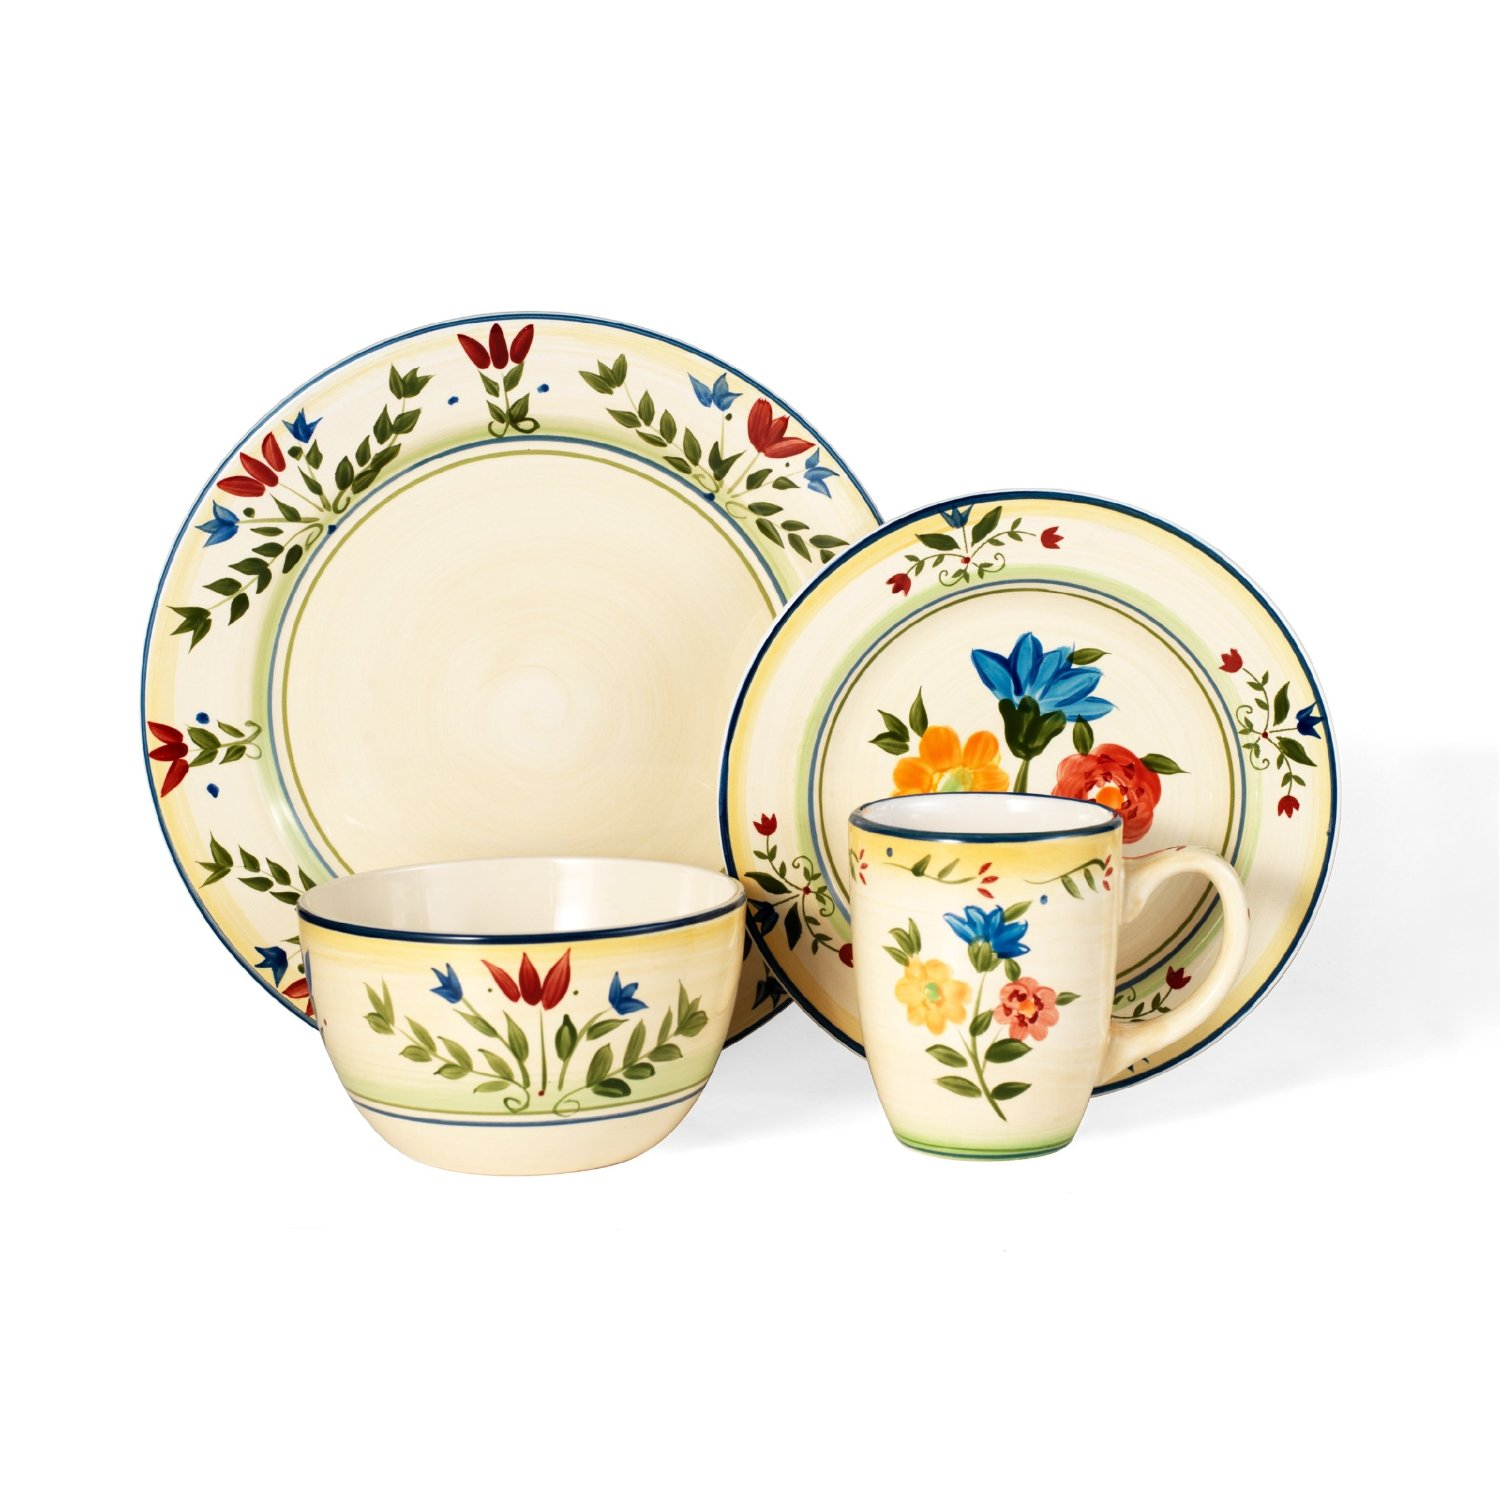 awesome dinnerware set in cream and floral pattern by pfaltzgraff for dinnerware ideas